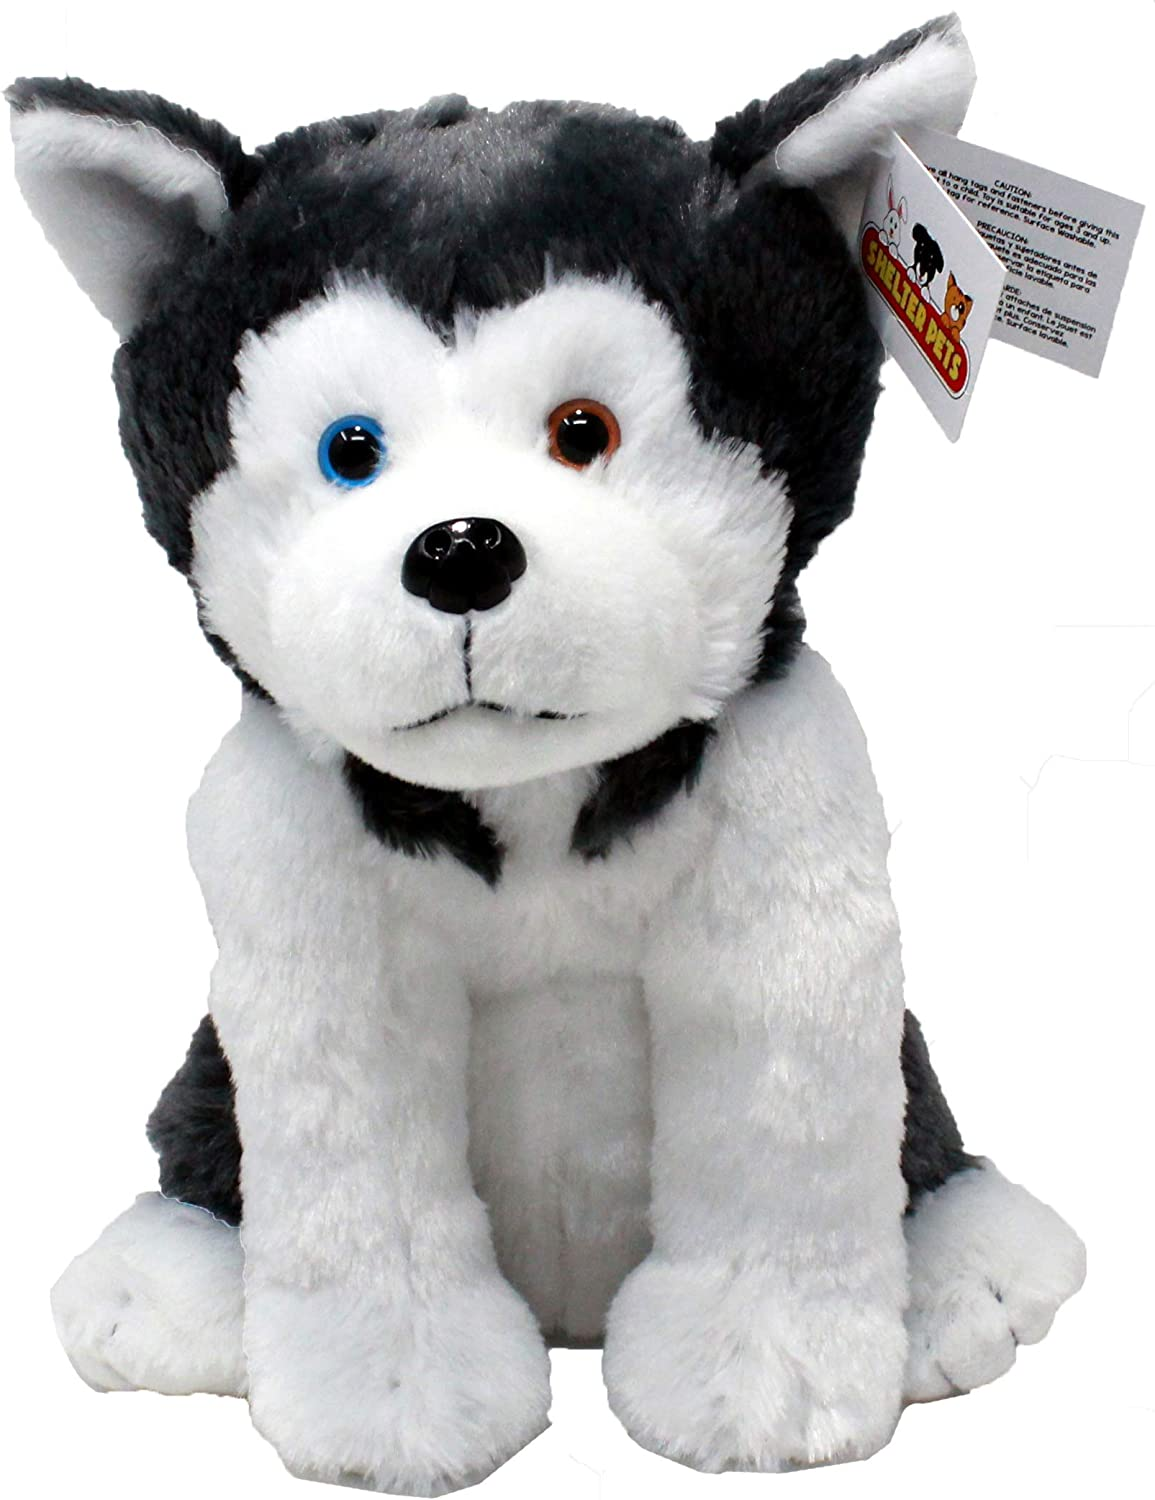 Amazon Com Shelter Pets Oakland The Dog 10 Siberian Husky Malamute Plush Toy Stuffed Animals Based On Real Life Adopted Pets Benefiting The Animal Shelters They Were Adopted From Toys Had worms, fleas, hated feet so she probably was my cousin has a family member with giant breed alaskan malamute twins, and they are the biggest sweethearts i have met! shelter pets oakland the dog 10 siberian husky malamute plush toy stuffed animals based on real life adopted pets benefiting the animal